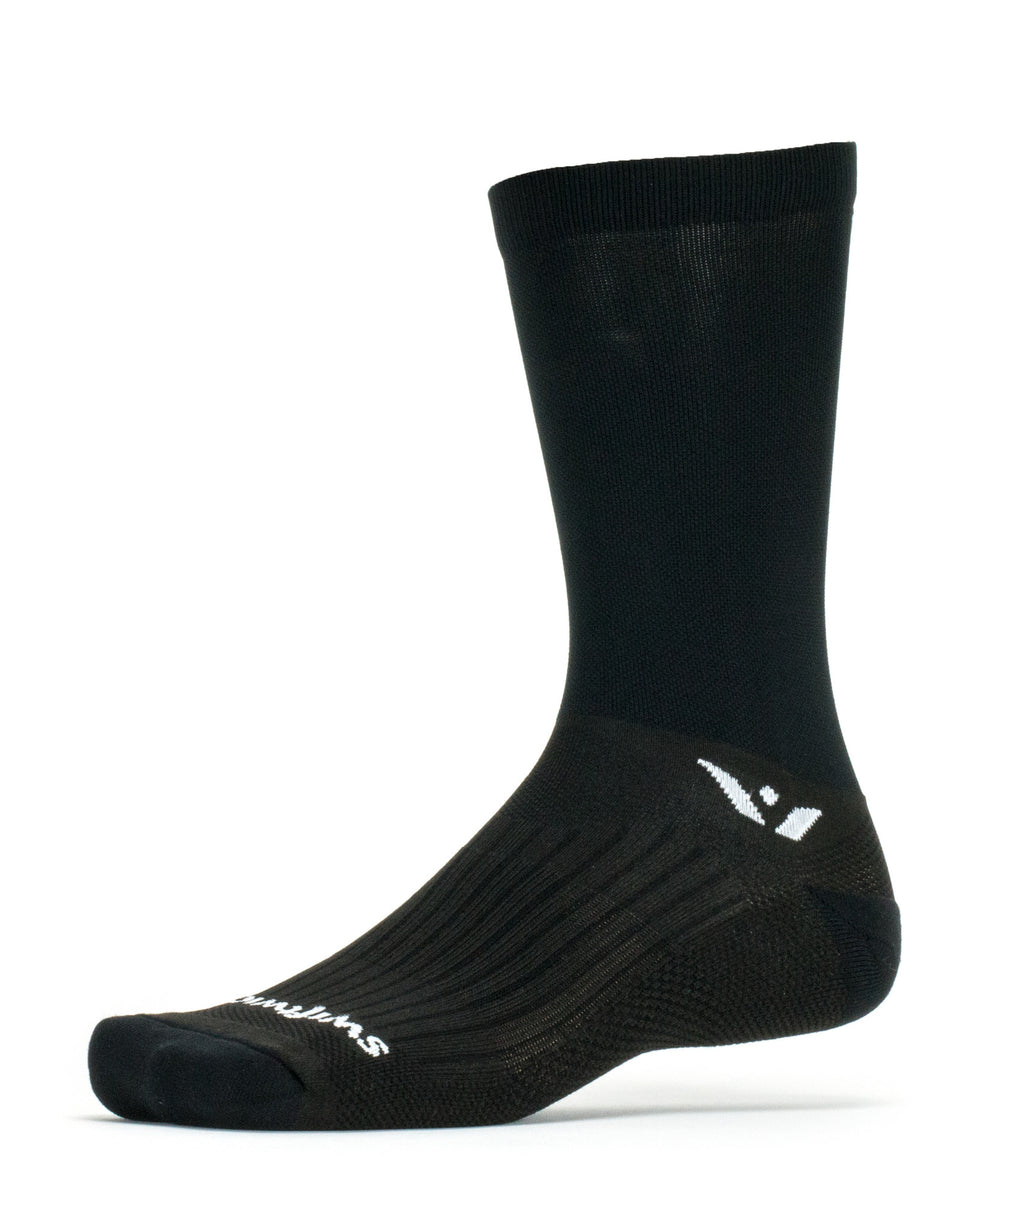 SWIFTWICK PERFORMANCE SEVEN INCH SOCK